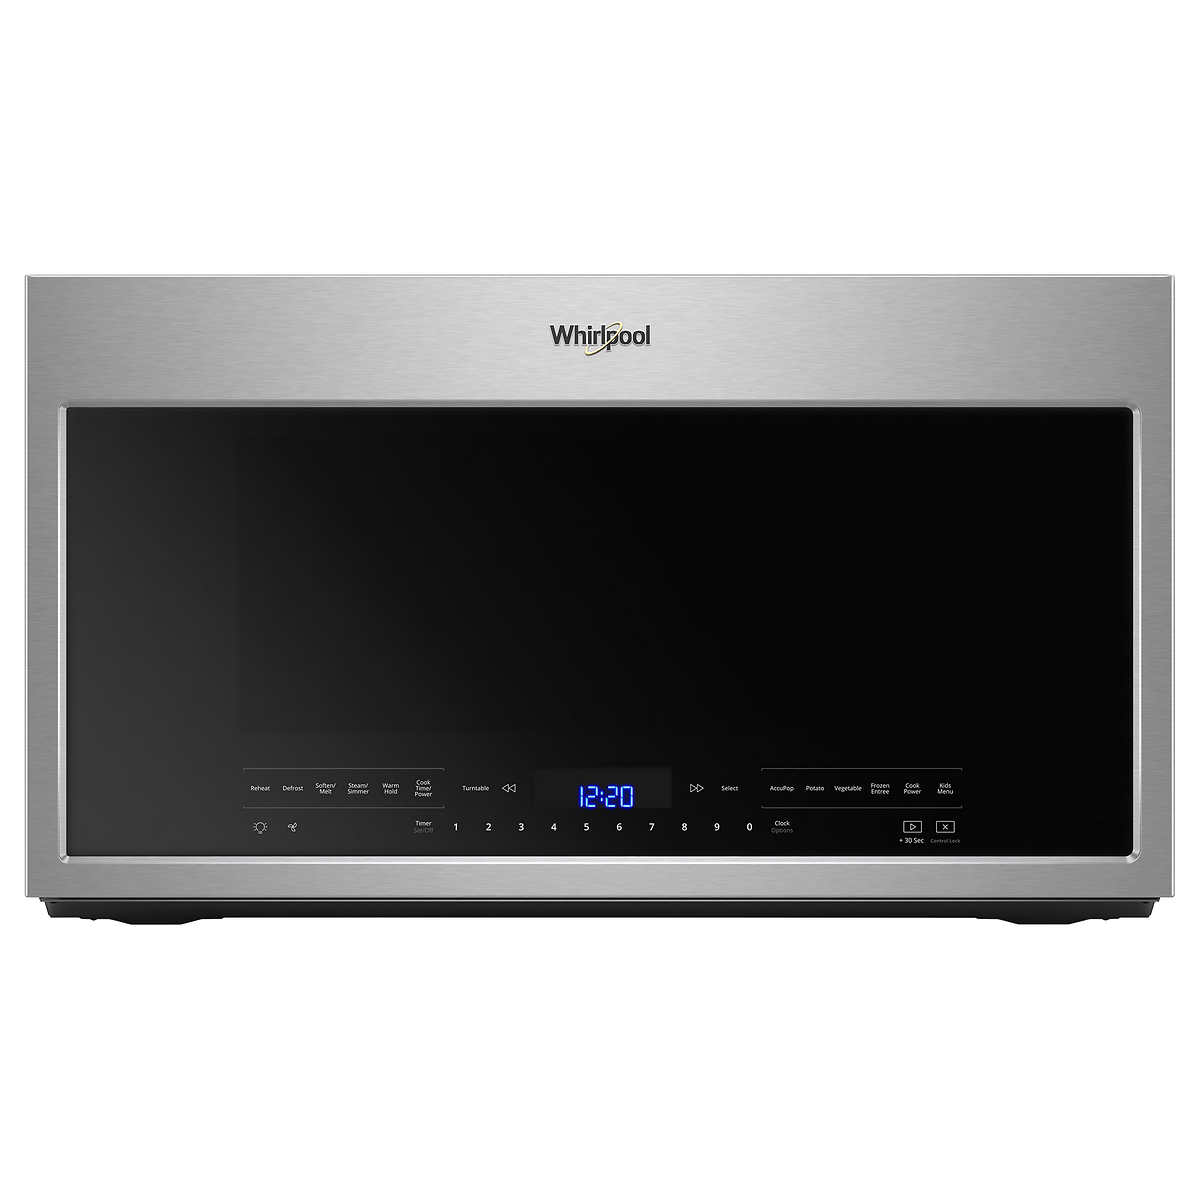 Whirlpool 19 Cu Ft Over The Range Microwave With Scan To Cook Mechanical Timer Wiring Diagram Technology In Fingerprint Resistant Stainless Steel